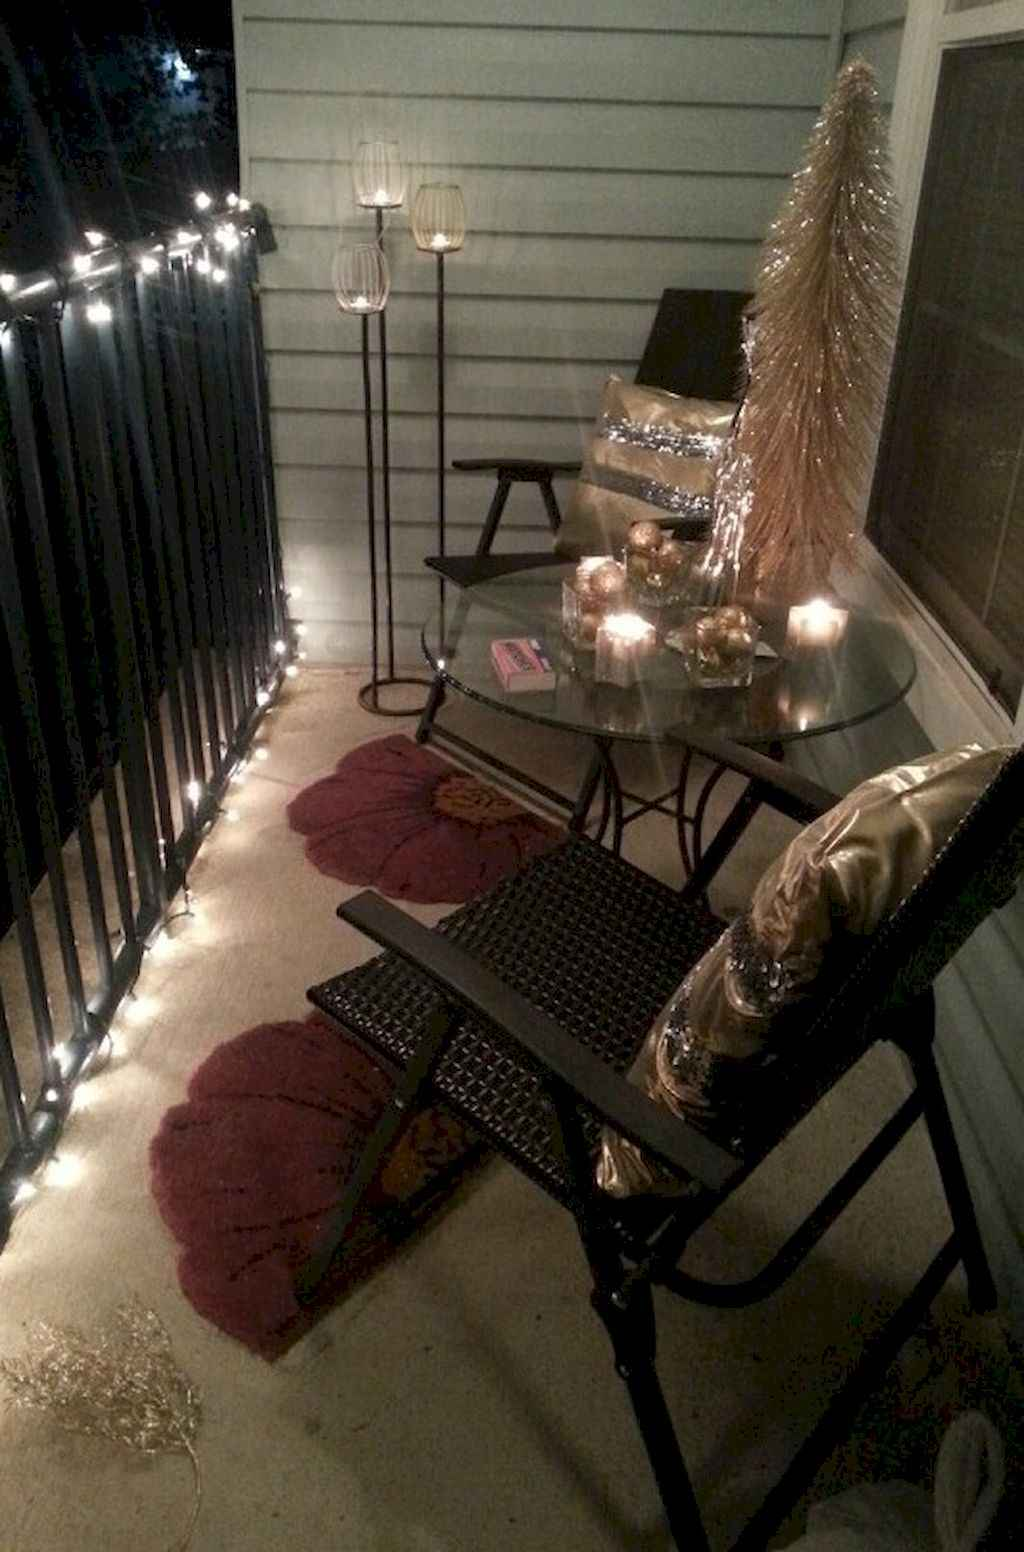 Couples first apartment decorating ideas (76)